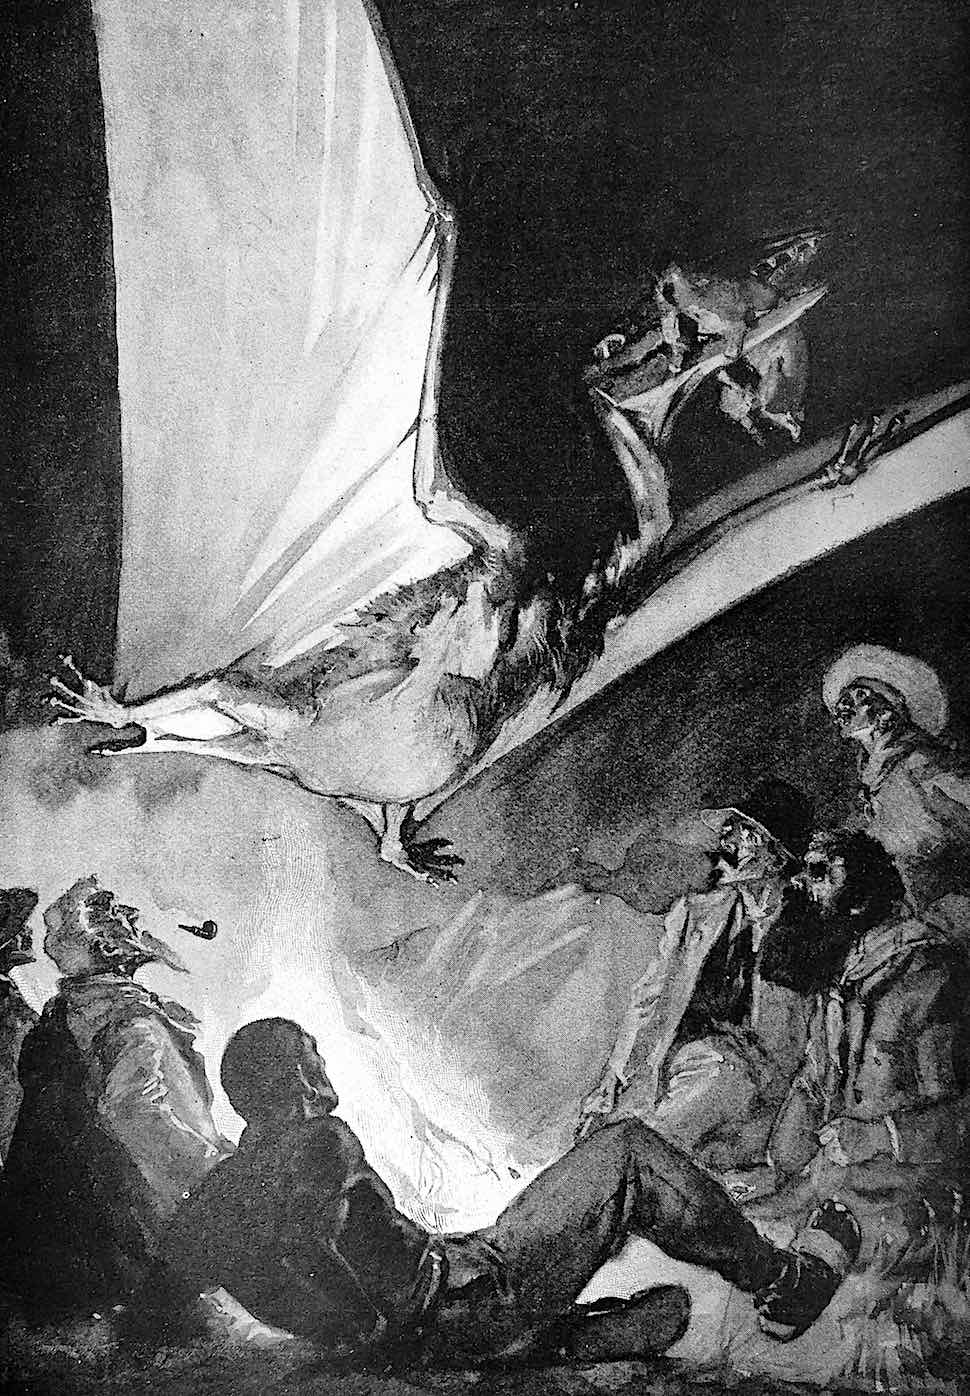 a Harry Rountree illustration of a Pterodactyl